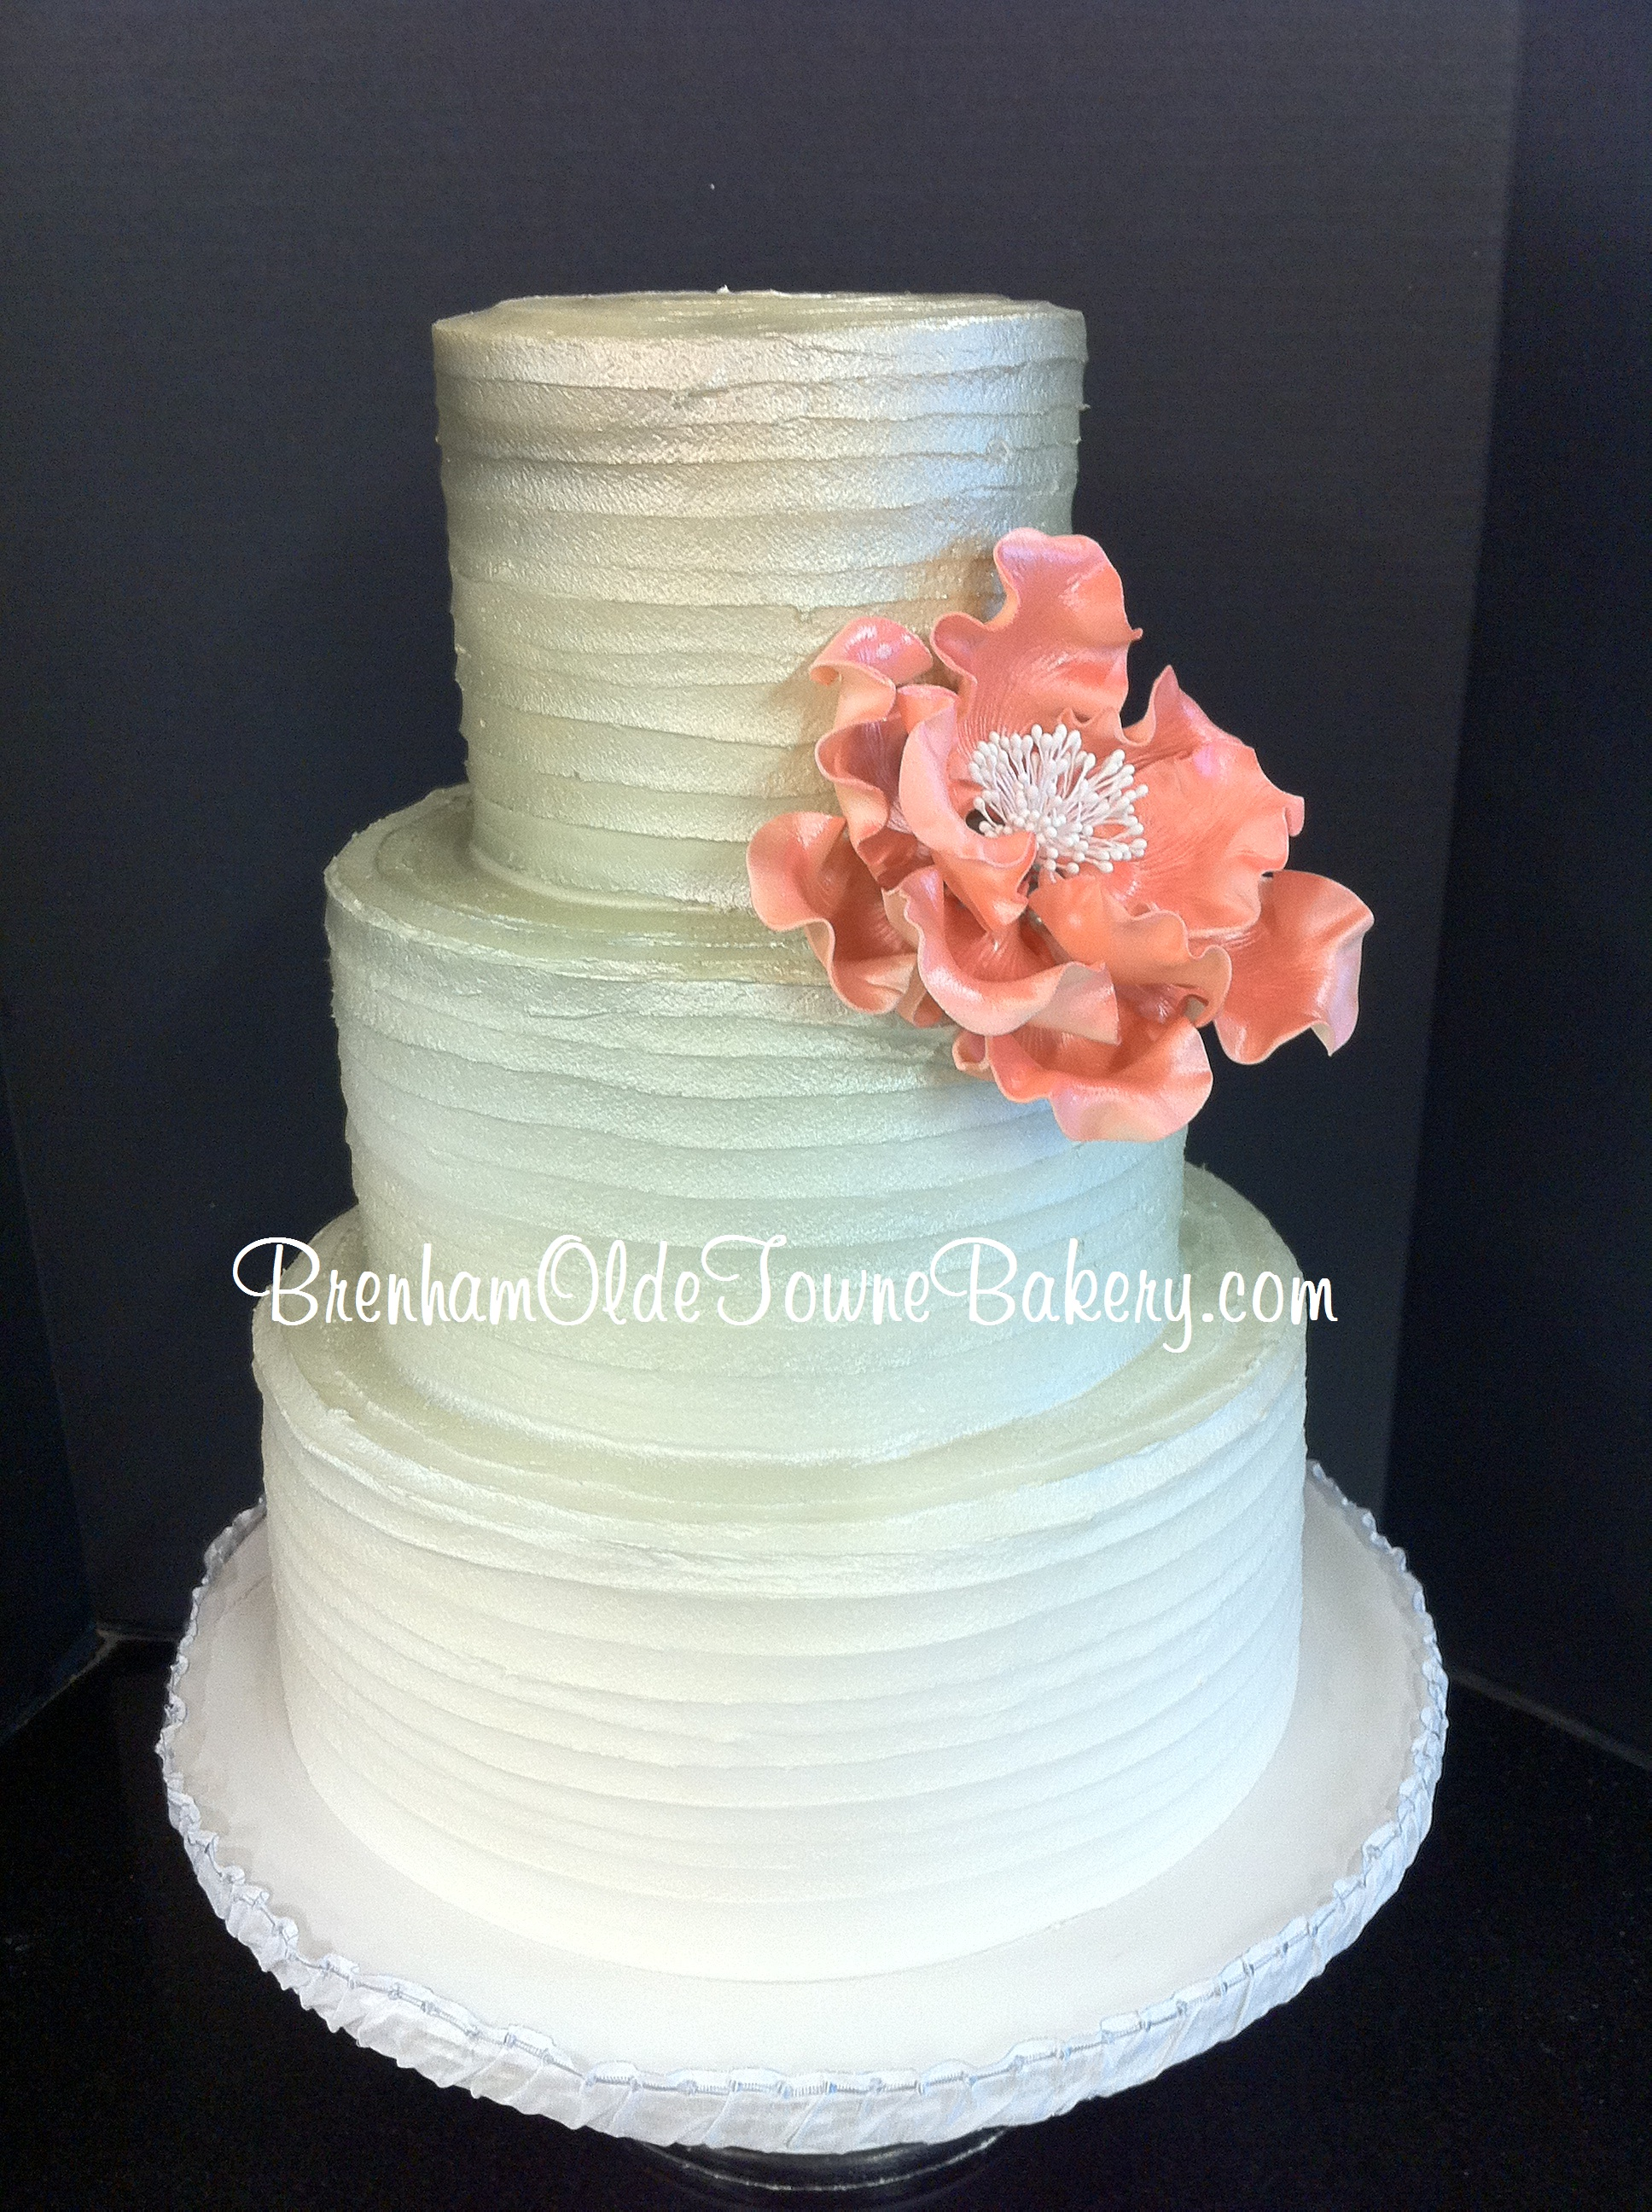 Old Town Bakery Cake Ideas and Designs